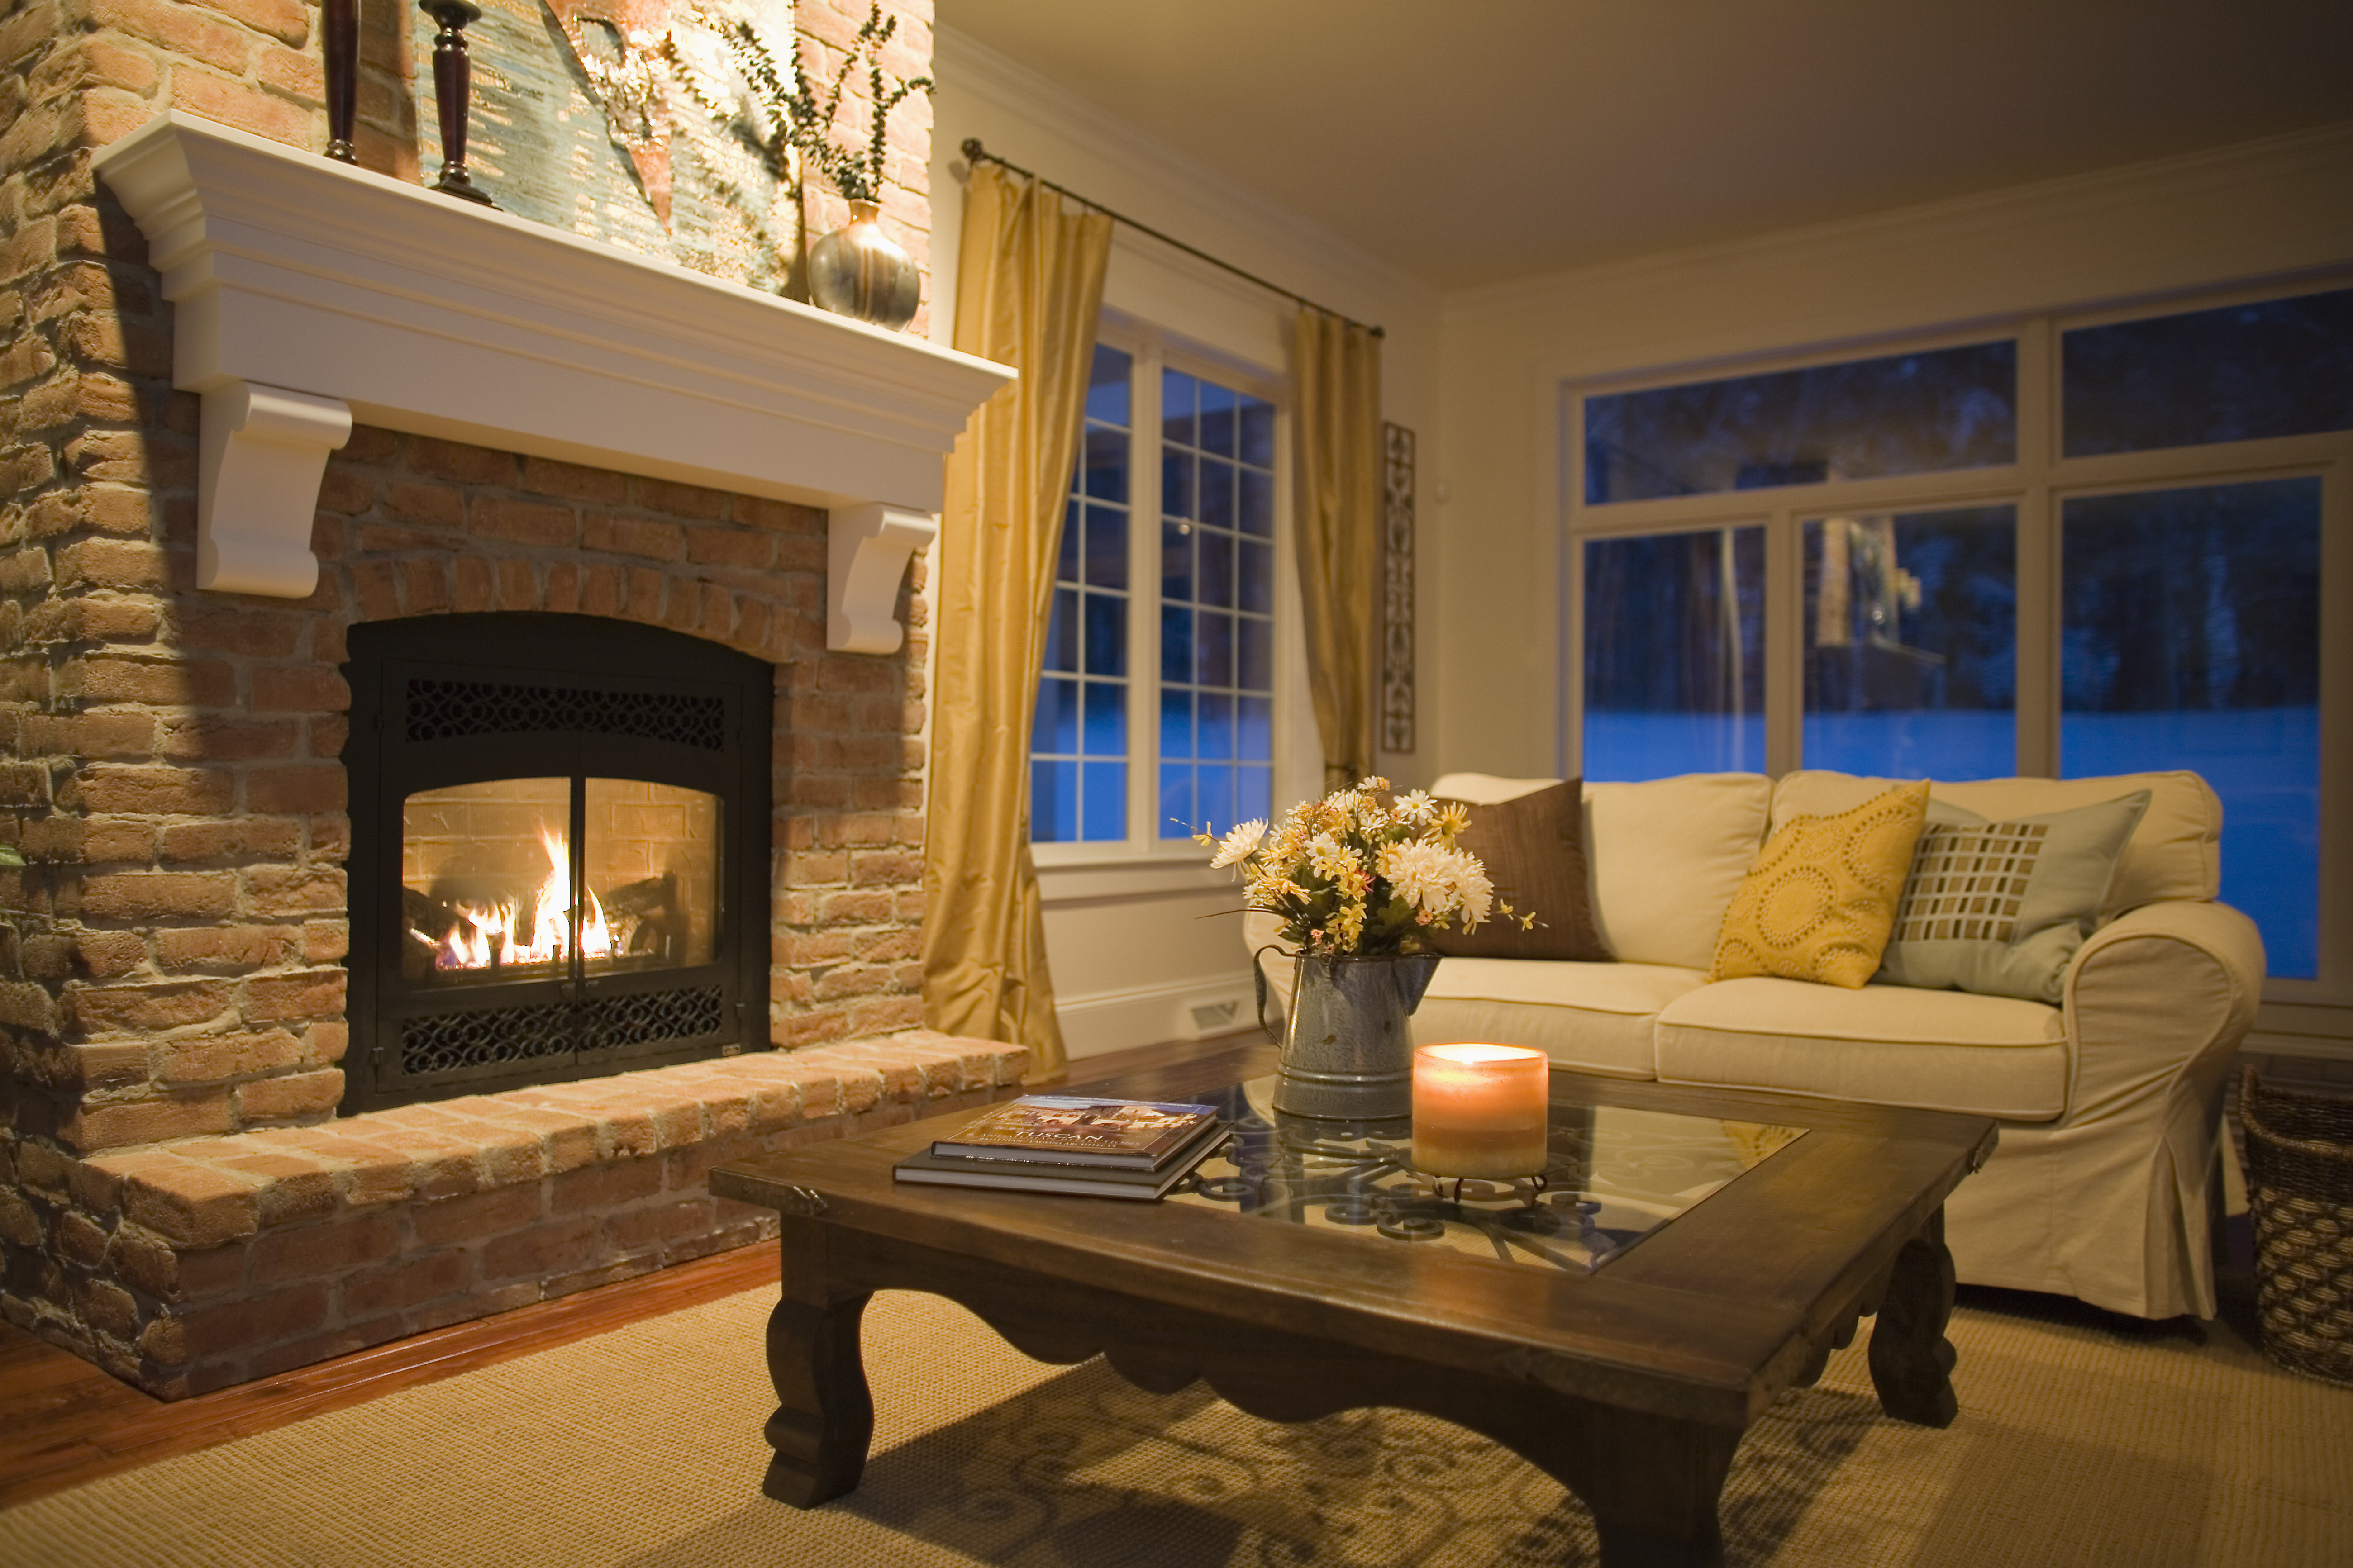 How To Clean Fireplace Bricks Quickly And Effectively Lovetoknow